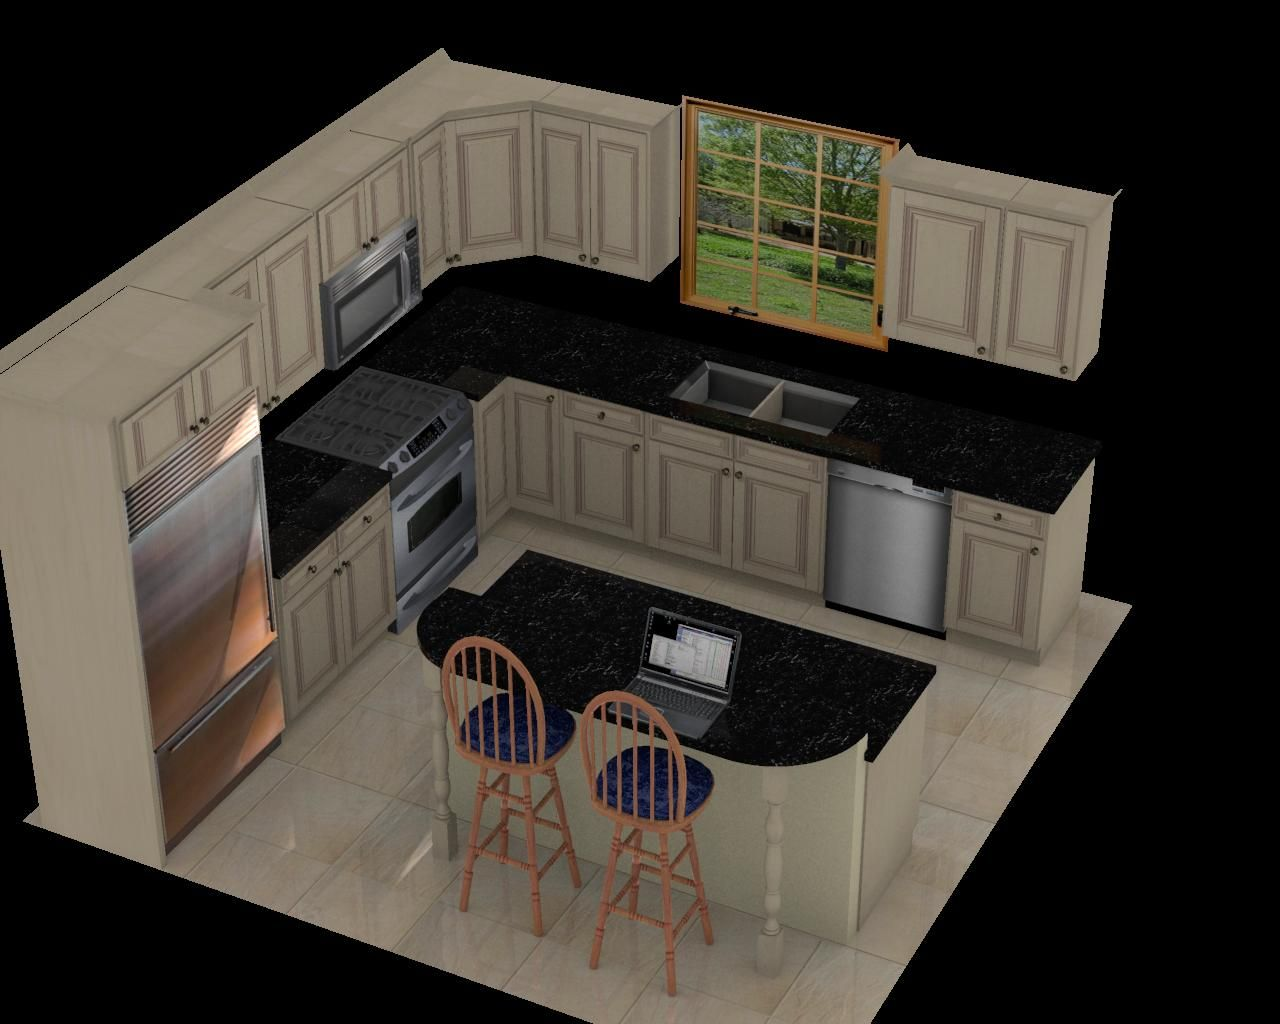 Luxury 12x12 kitchen layout with island 51 for with 12x12 for 10x10 kitchen designs ideas